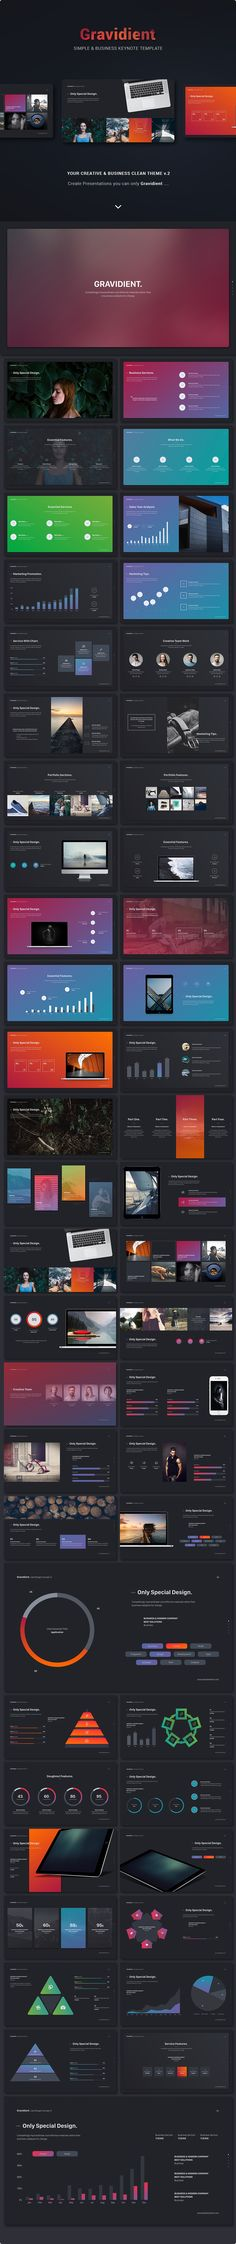 Gravidient Simply Creative Template Get a modern Keynote Presentation that is beautifully designed and functional. This slides comes with infographic elements, charts graphs and icons. This...